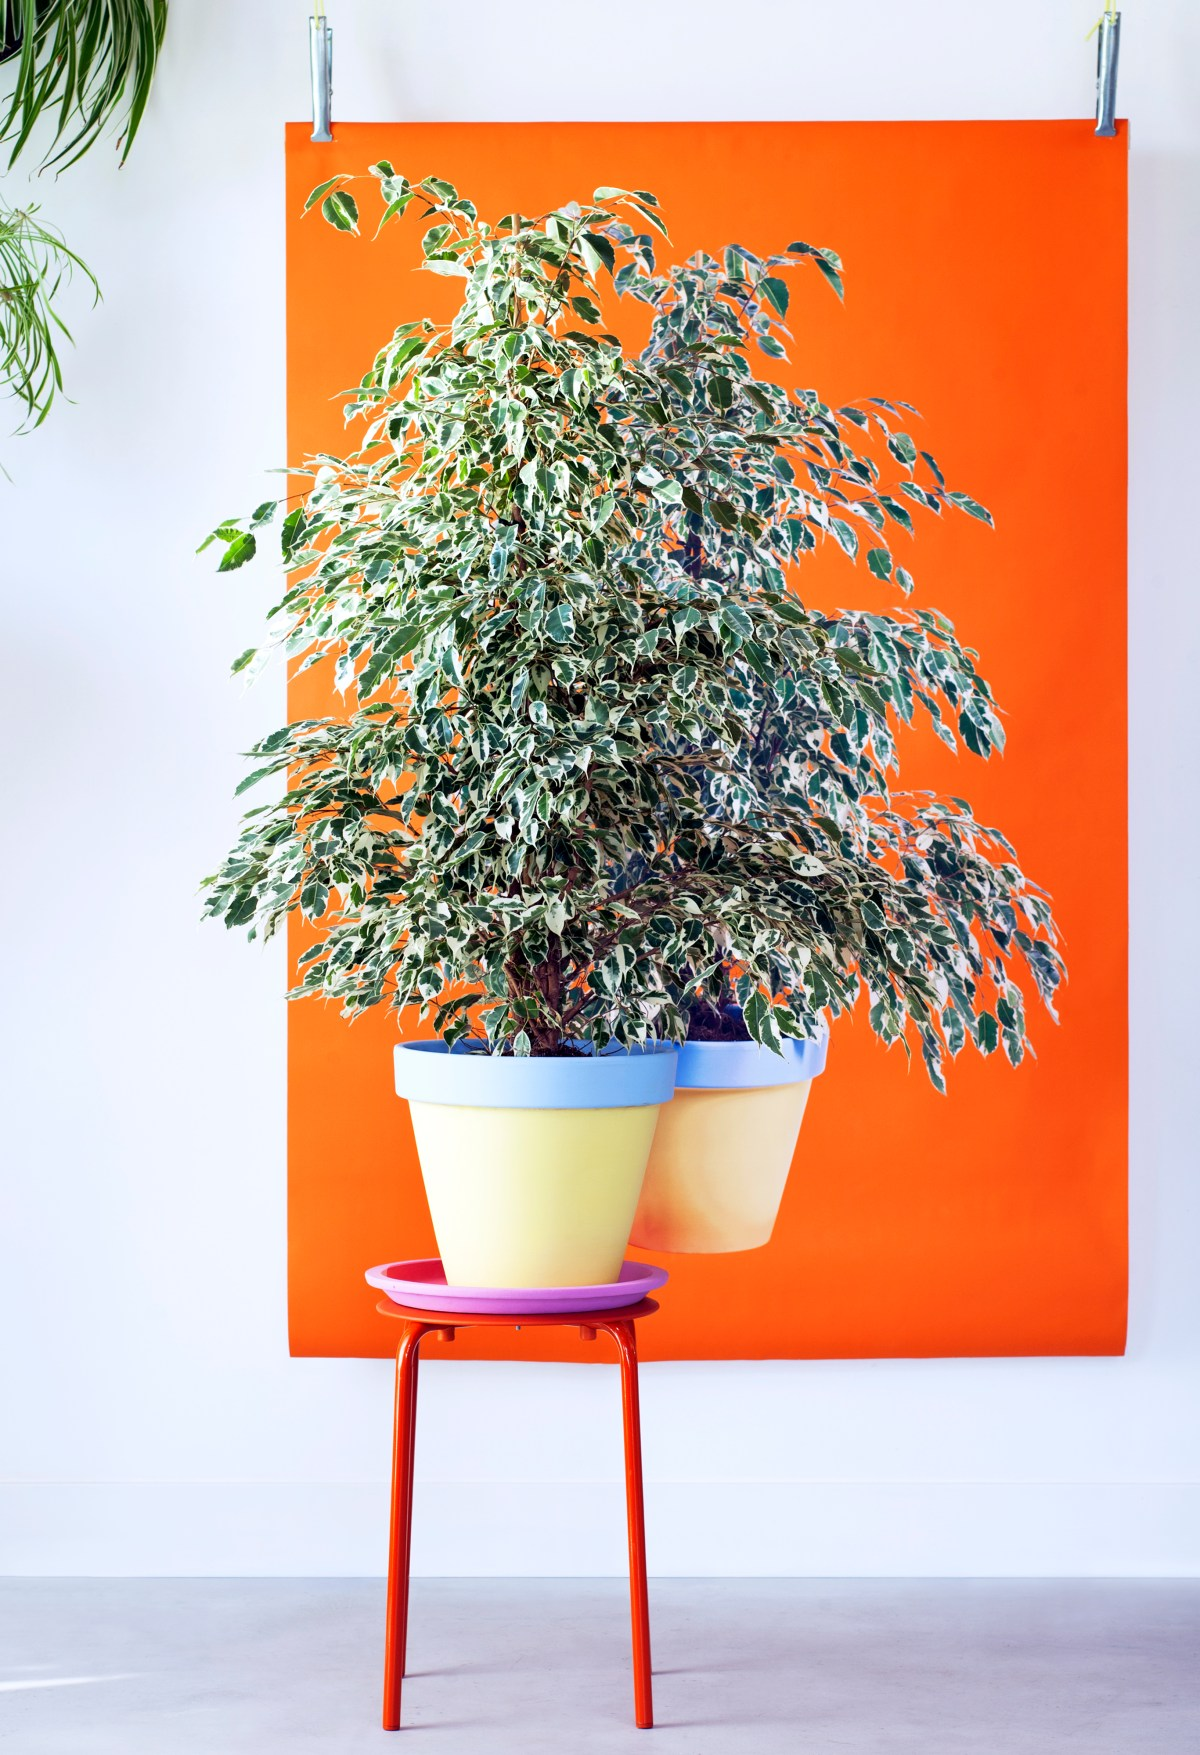 Ficus benjamina is the Houseplant for January